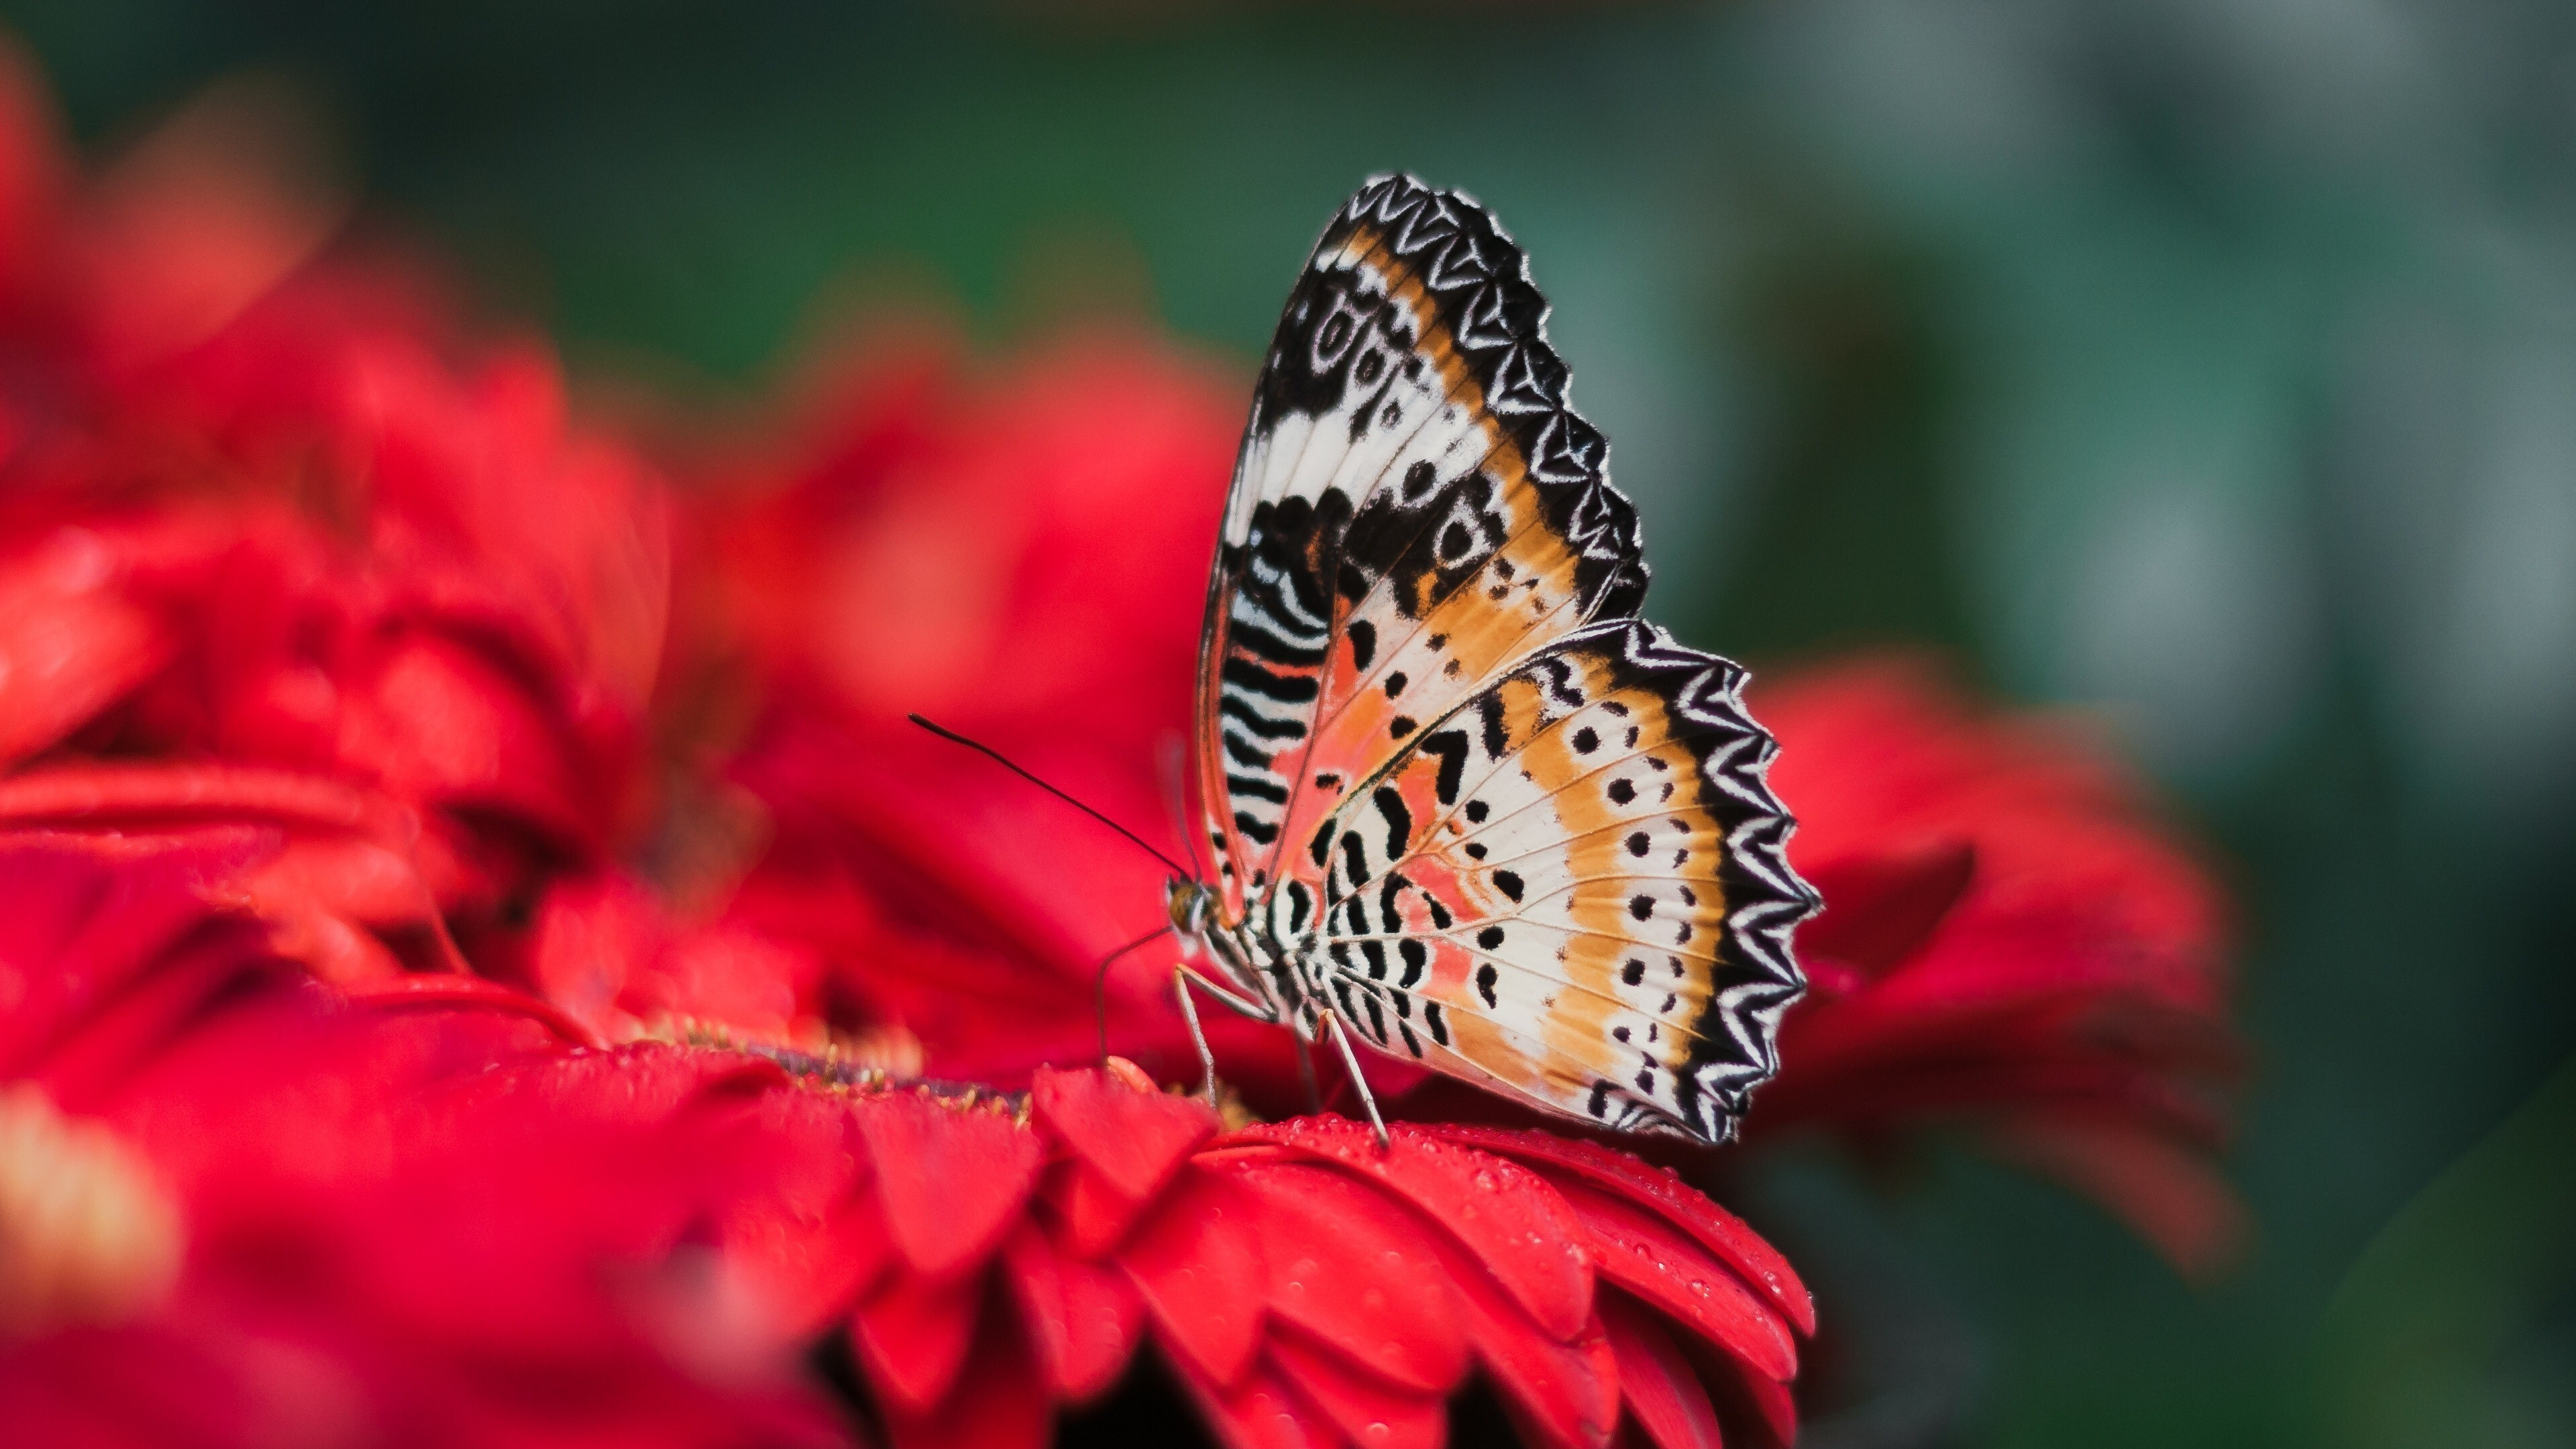 Free Colorful Flower Wallpaper Downloads: Colorful Butterfly On Red Flower 4K Wallpaper